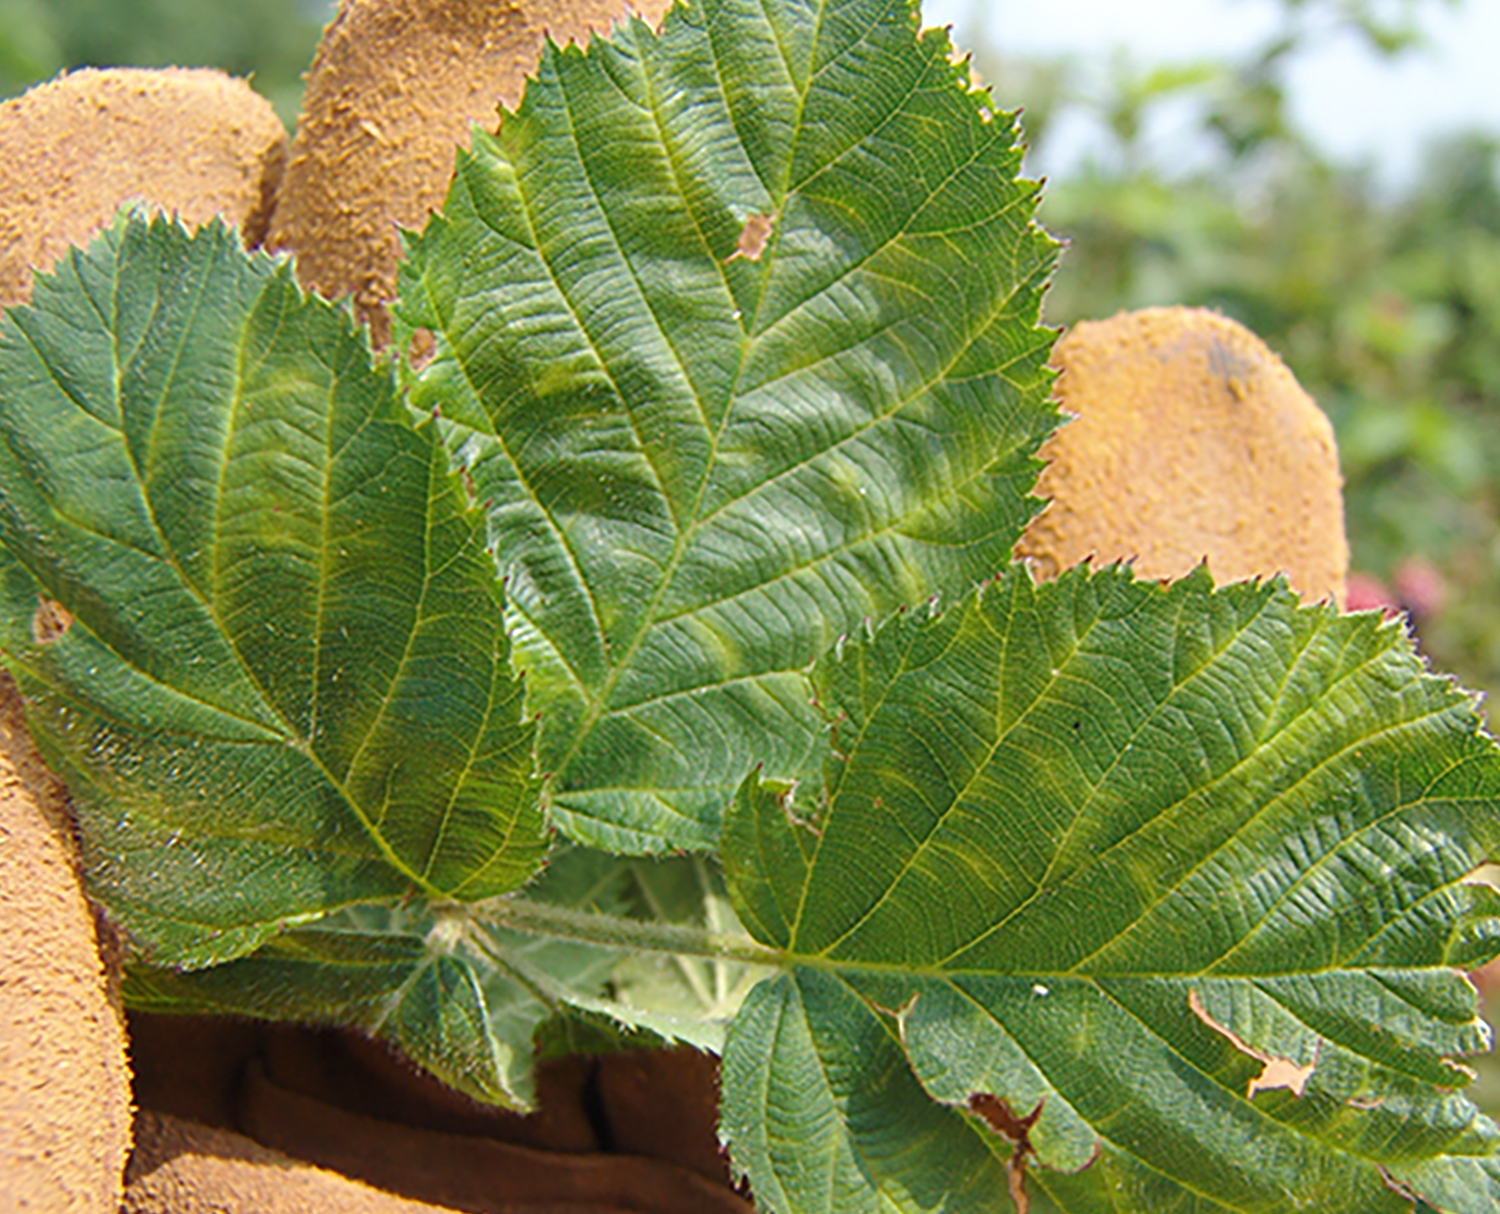 Pictured are three blackberry leaves that have Blackberry Yellow Vein Virus.